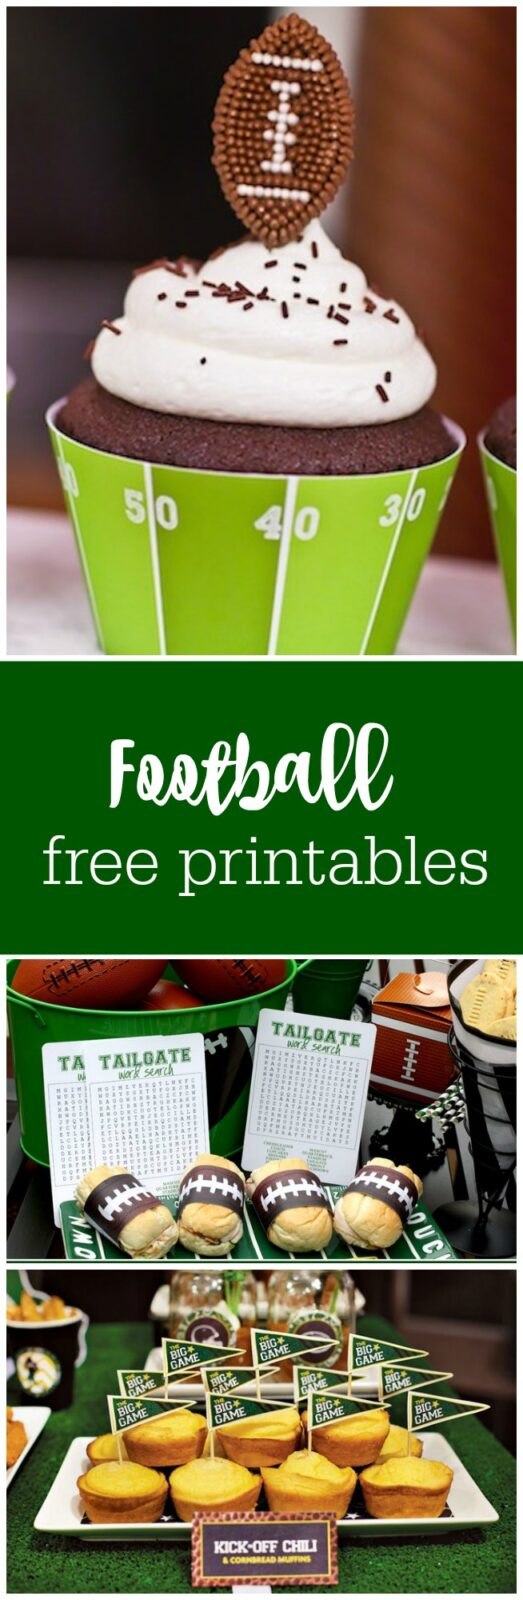 Football and tailgating free printables curated by The Party Teacher